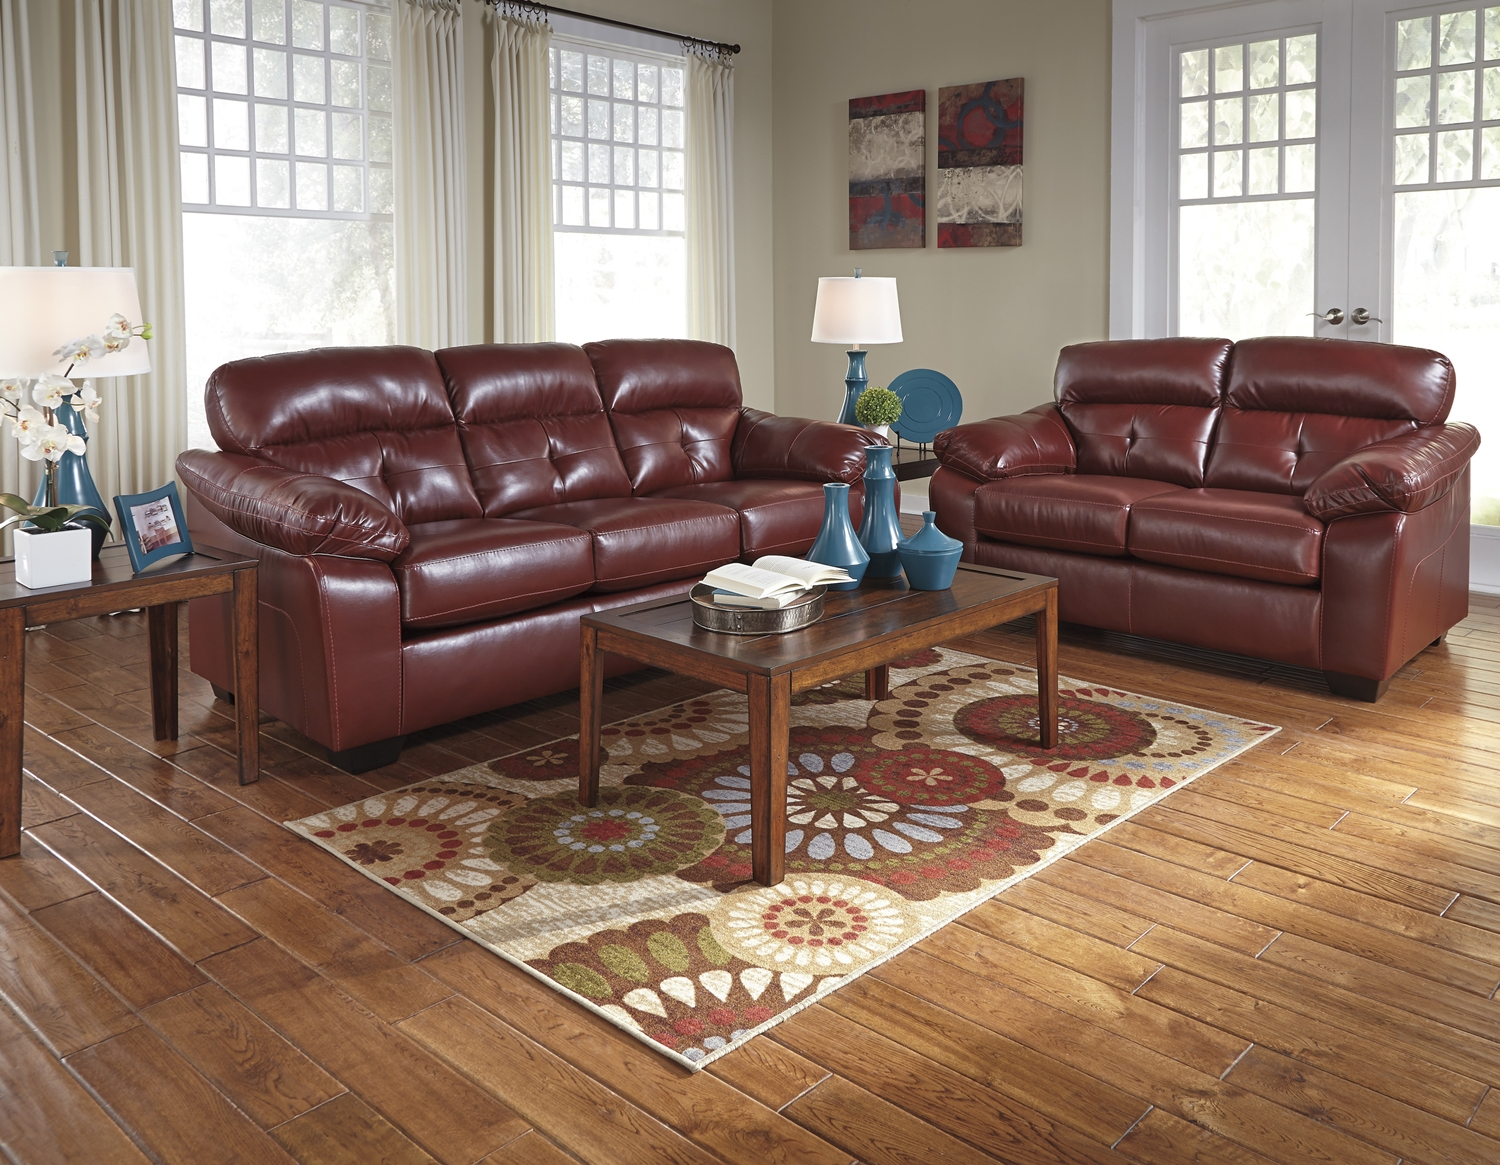 Crimson dark red casual contemporary living room furniture set ashley for Modern red living room furniture